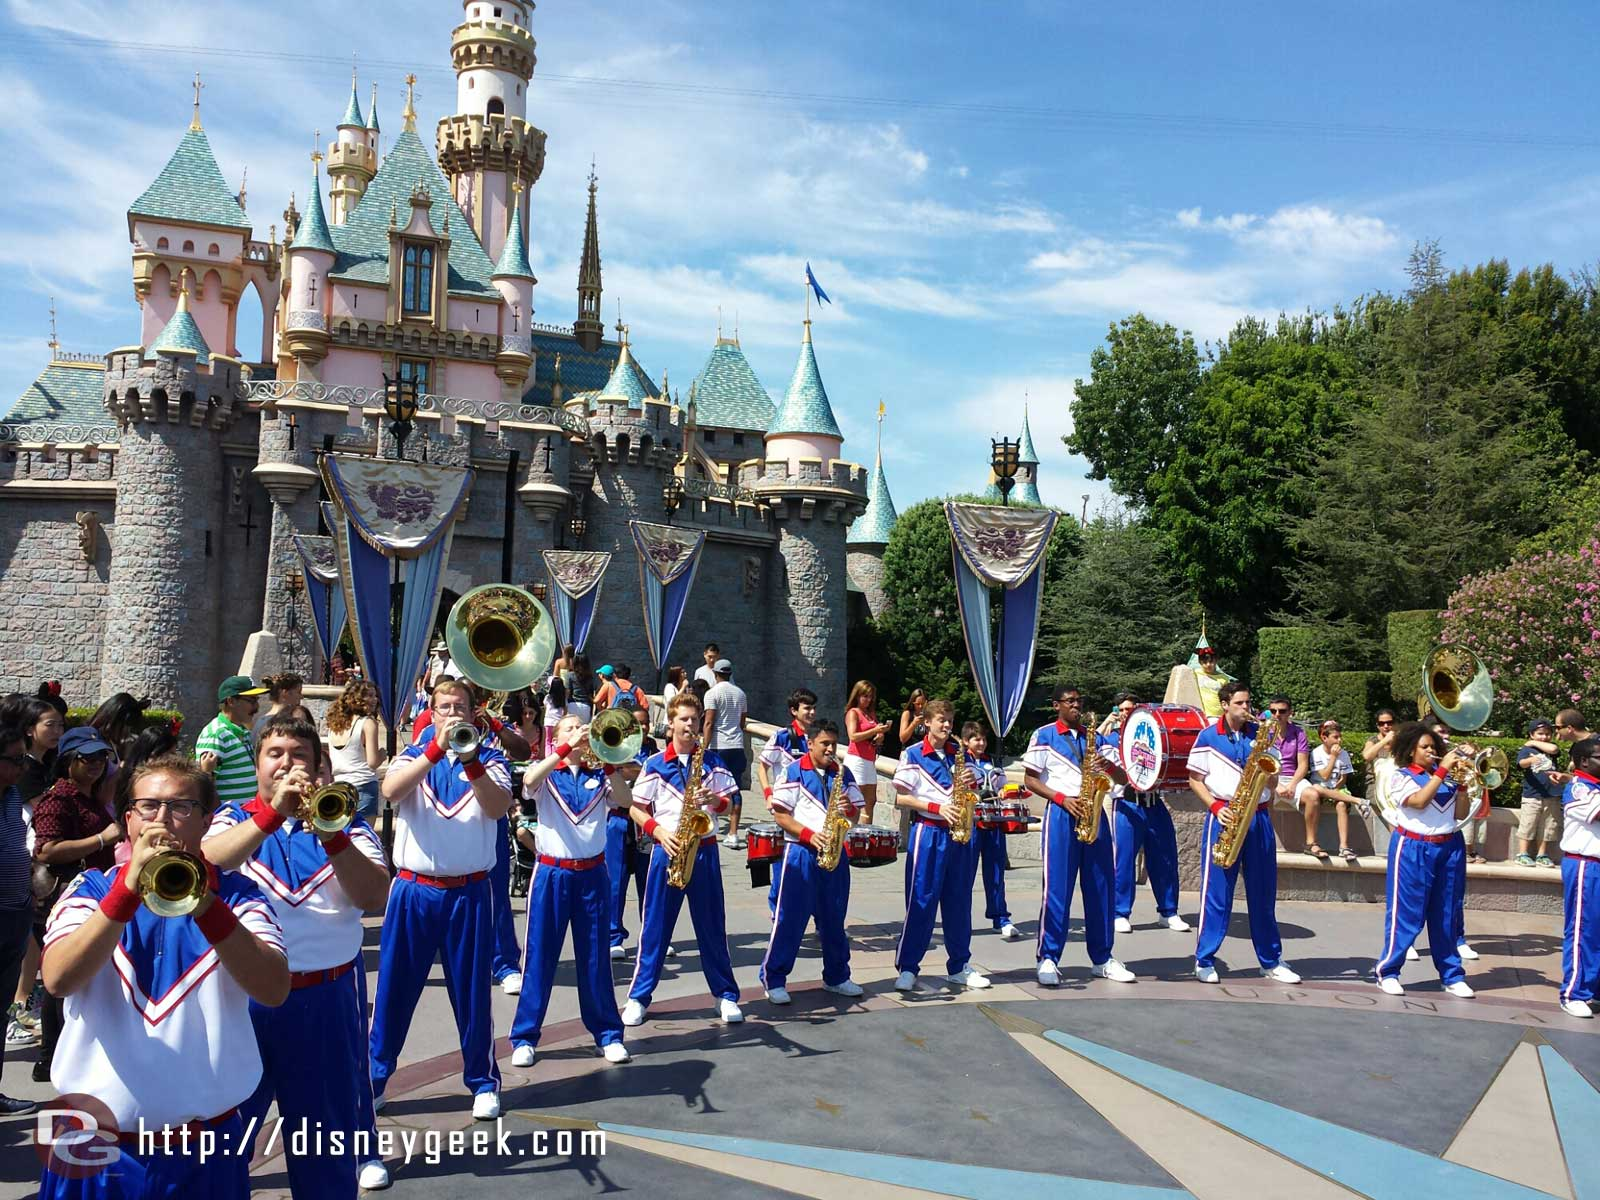 The 2014 #Disneyland All-American College Band performing in front of Sleeping Beauty Castle